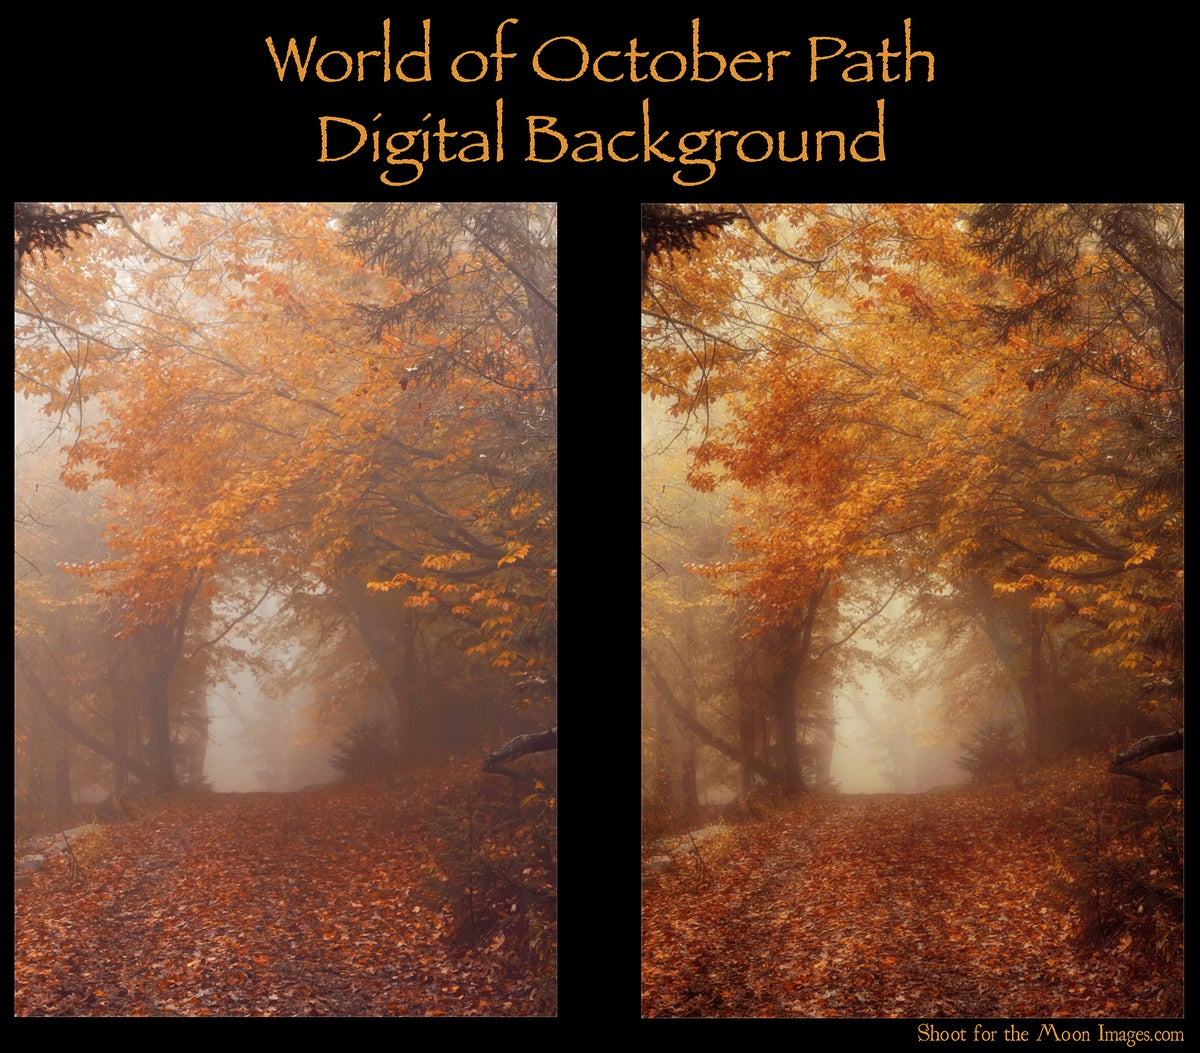 Image of World of October Path Digital Backgrounds